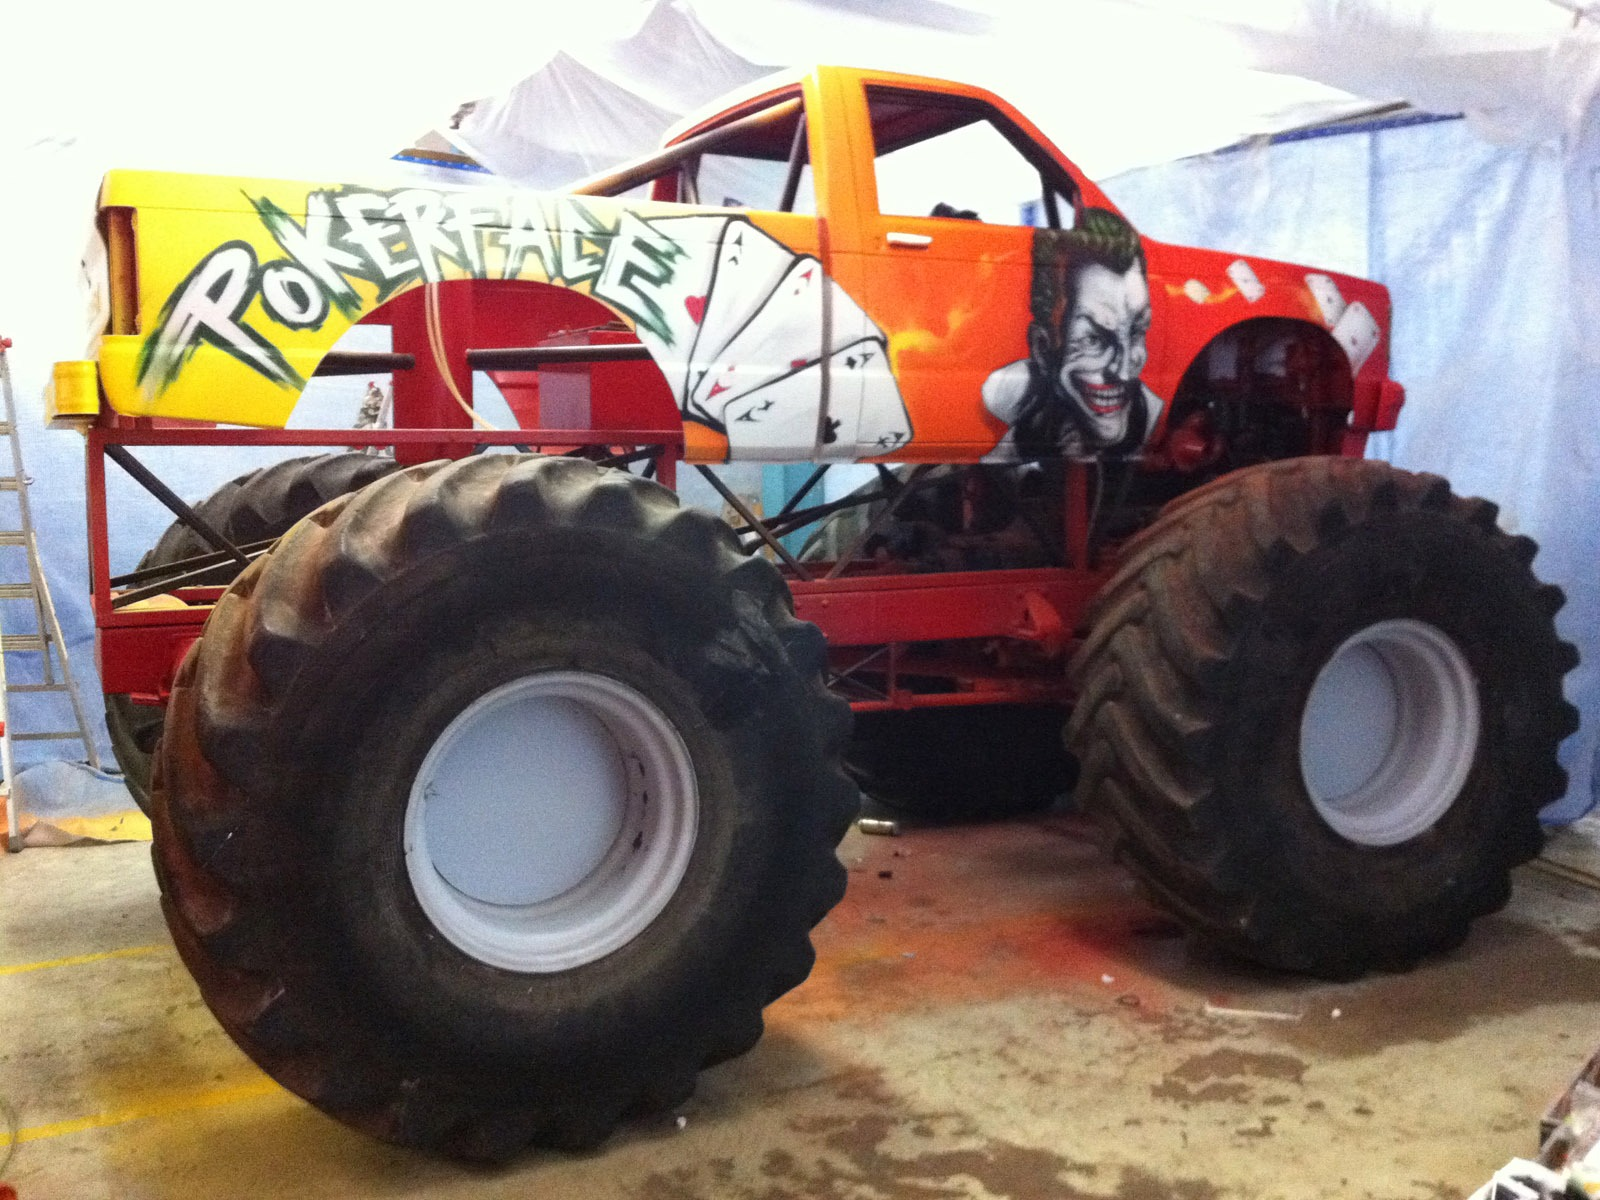 Monstertruck_Lehmann_auto_2012_Jocker_Spiel_Karten_gesicht_mensch_Objekt_rot_orange_Illustrativ_Privat